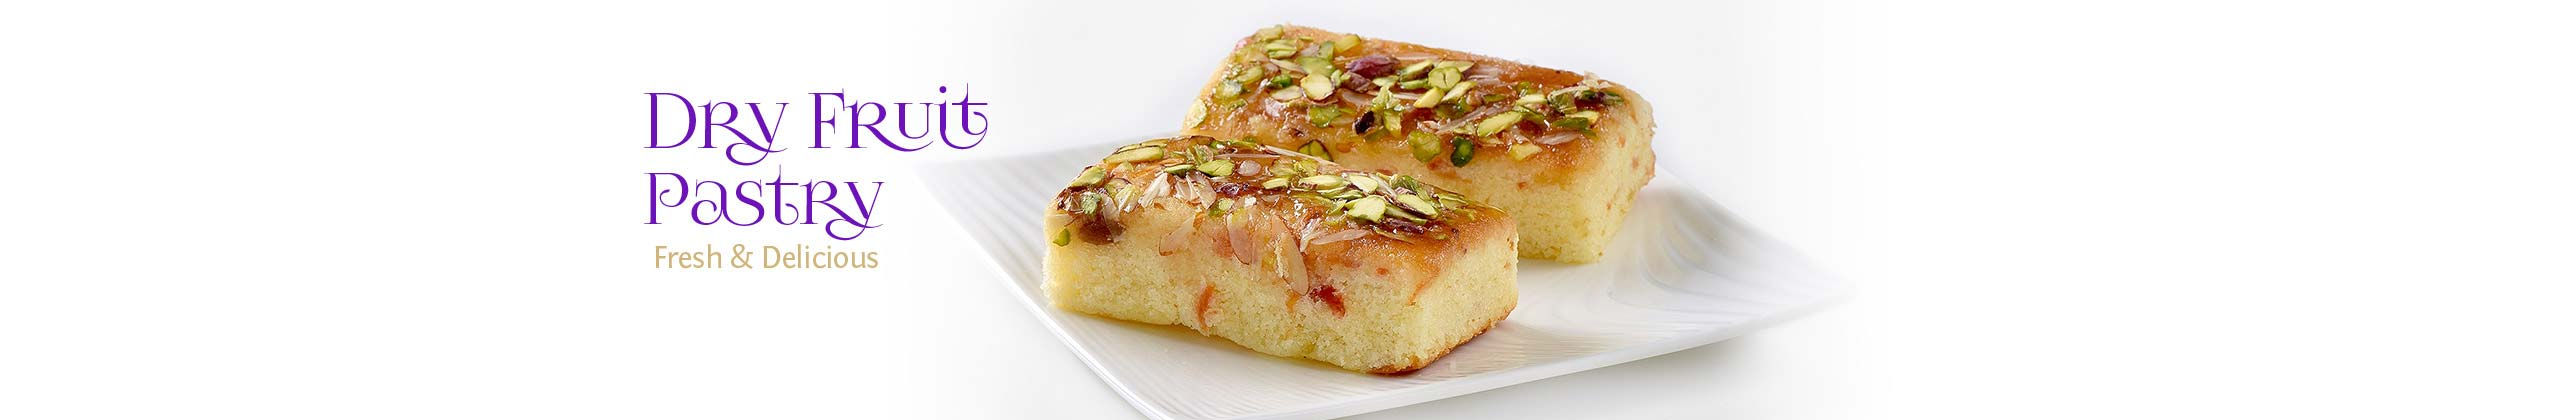 6-Dry-Fruit-Pastry